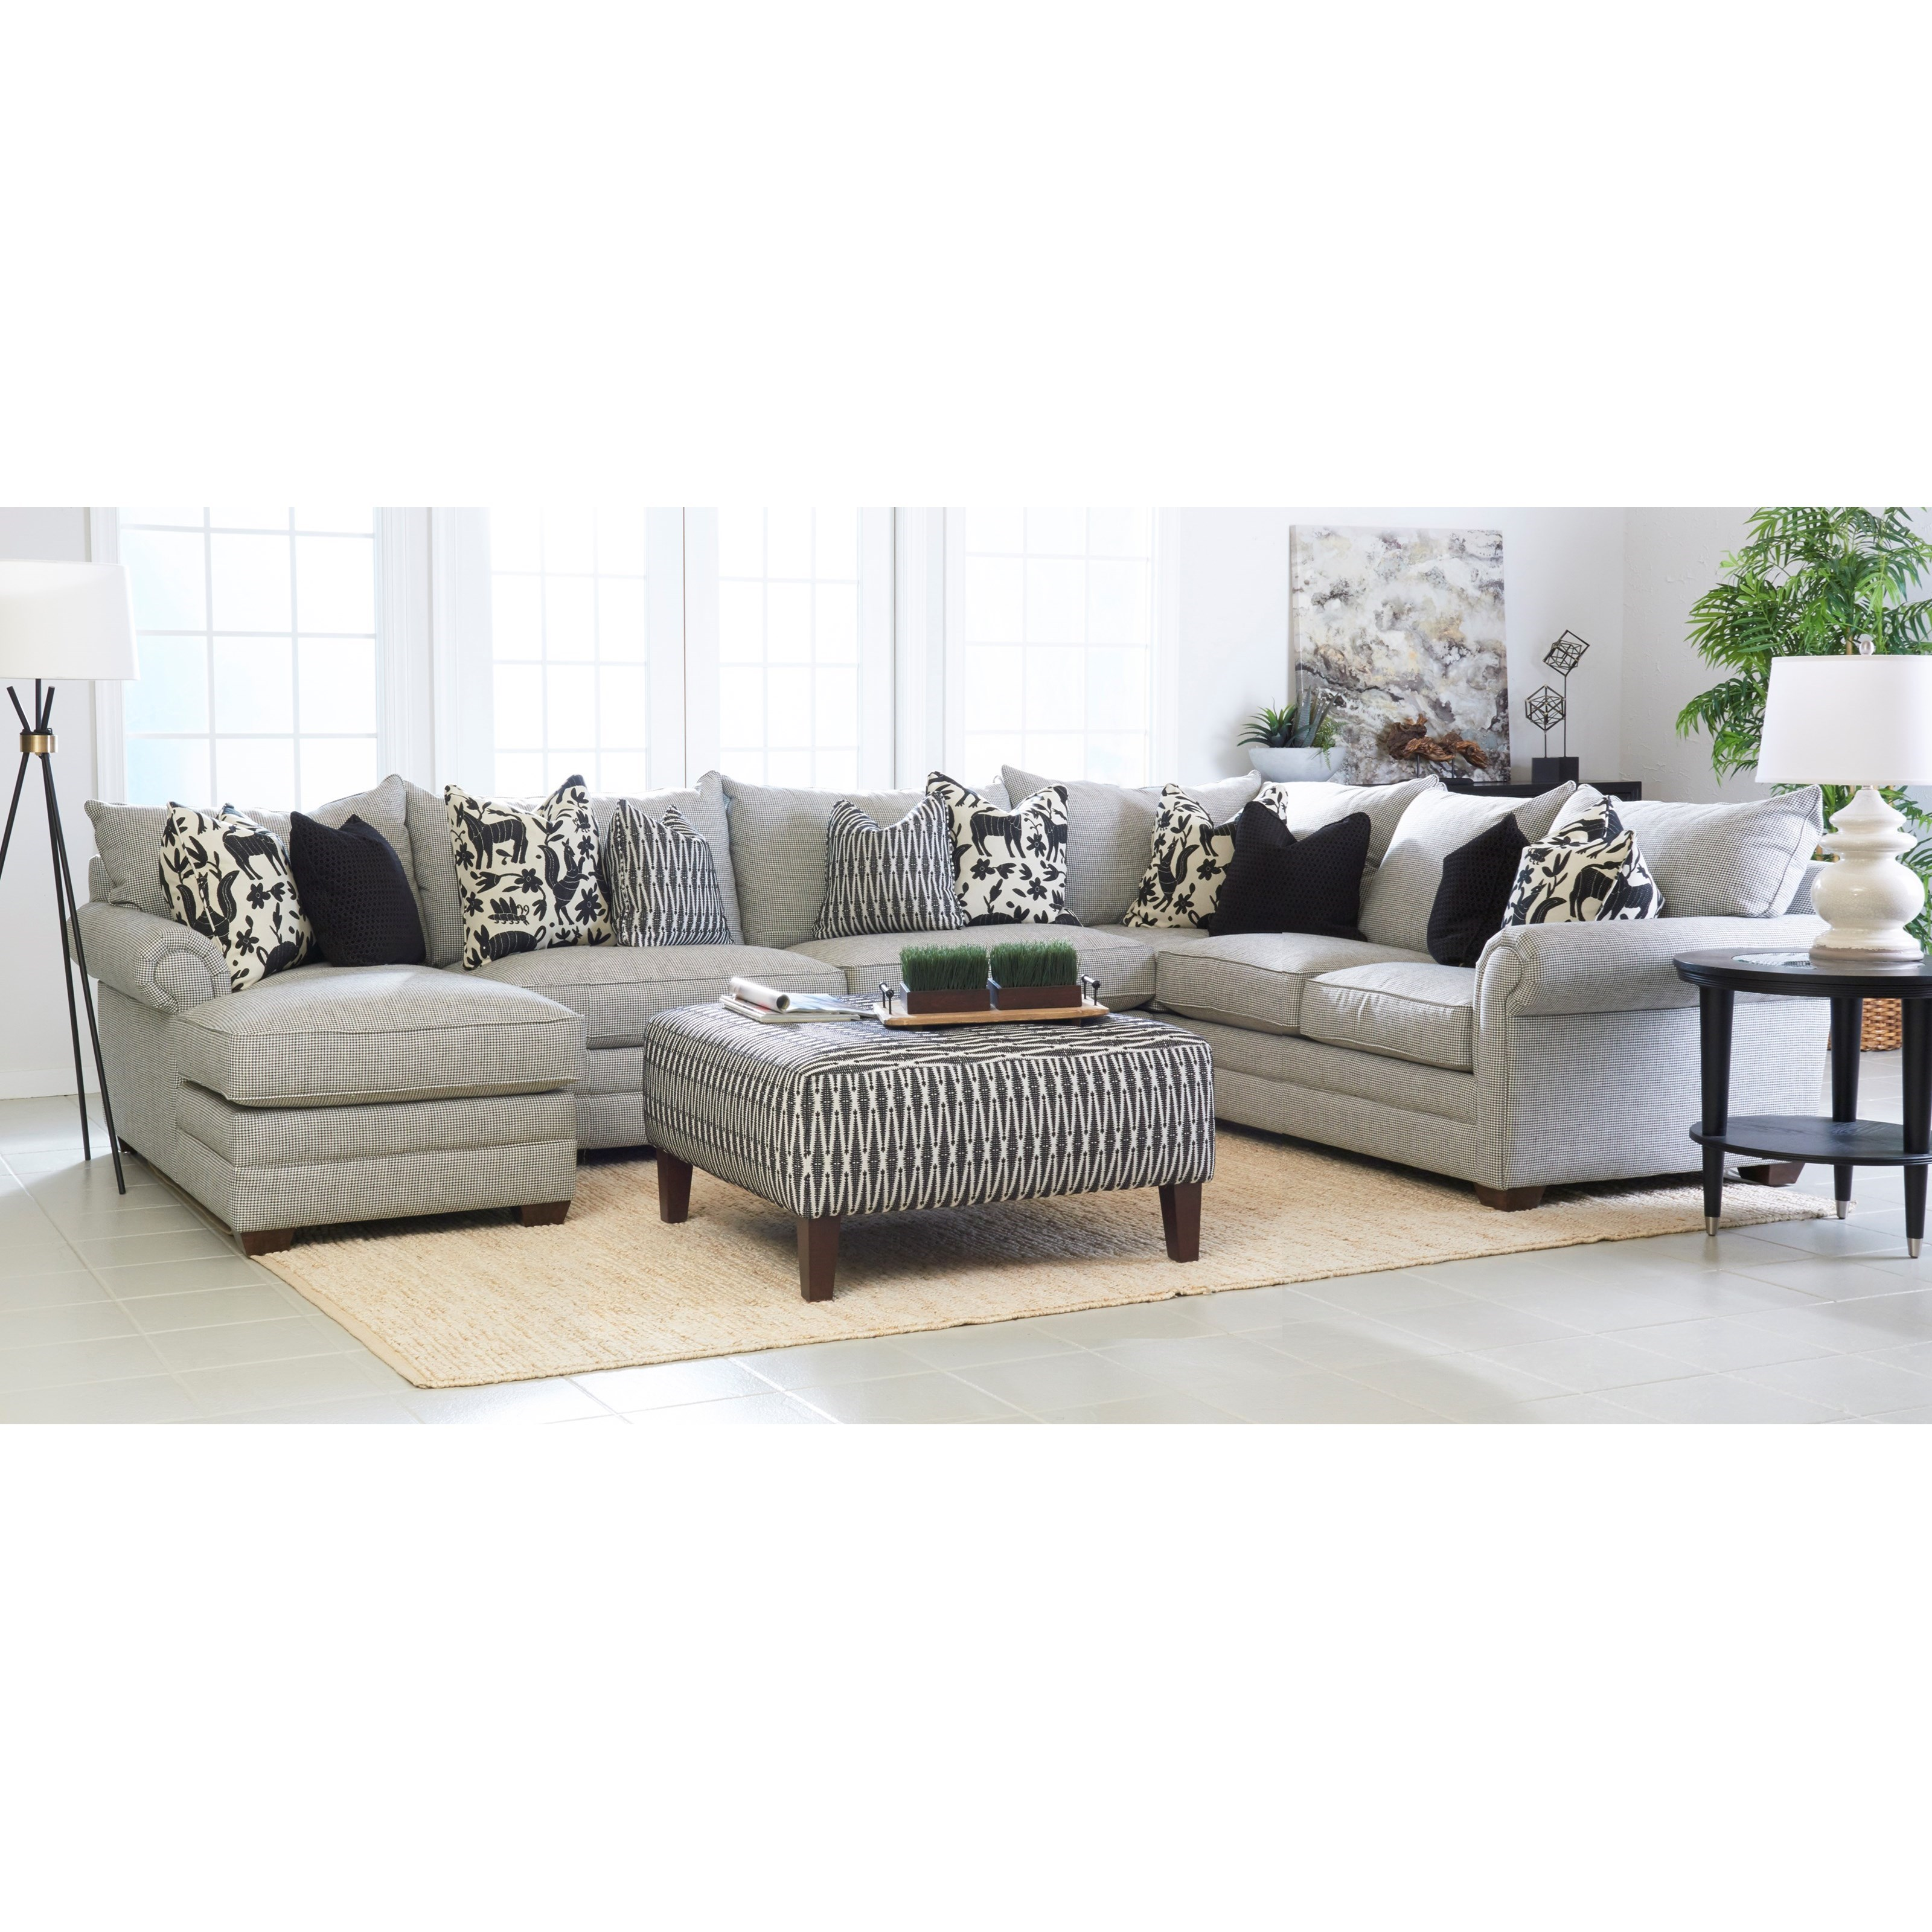 Klaussner Huntley Four Piece Sectional Sofa with LAF ...